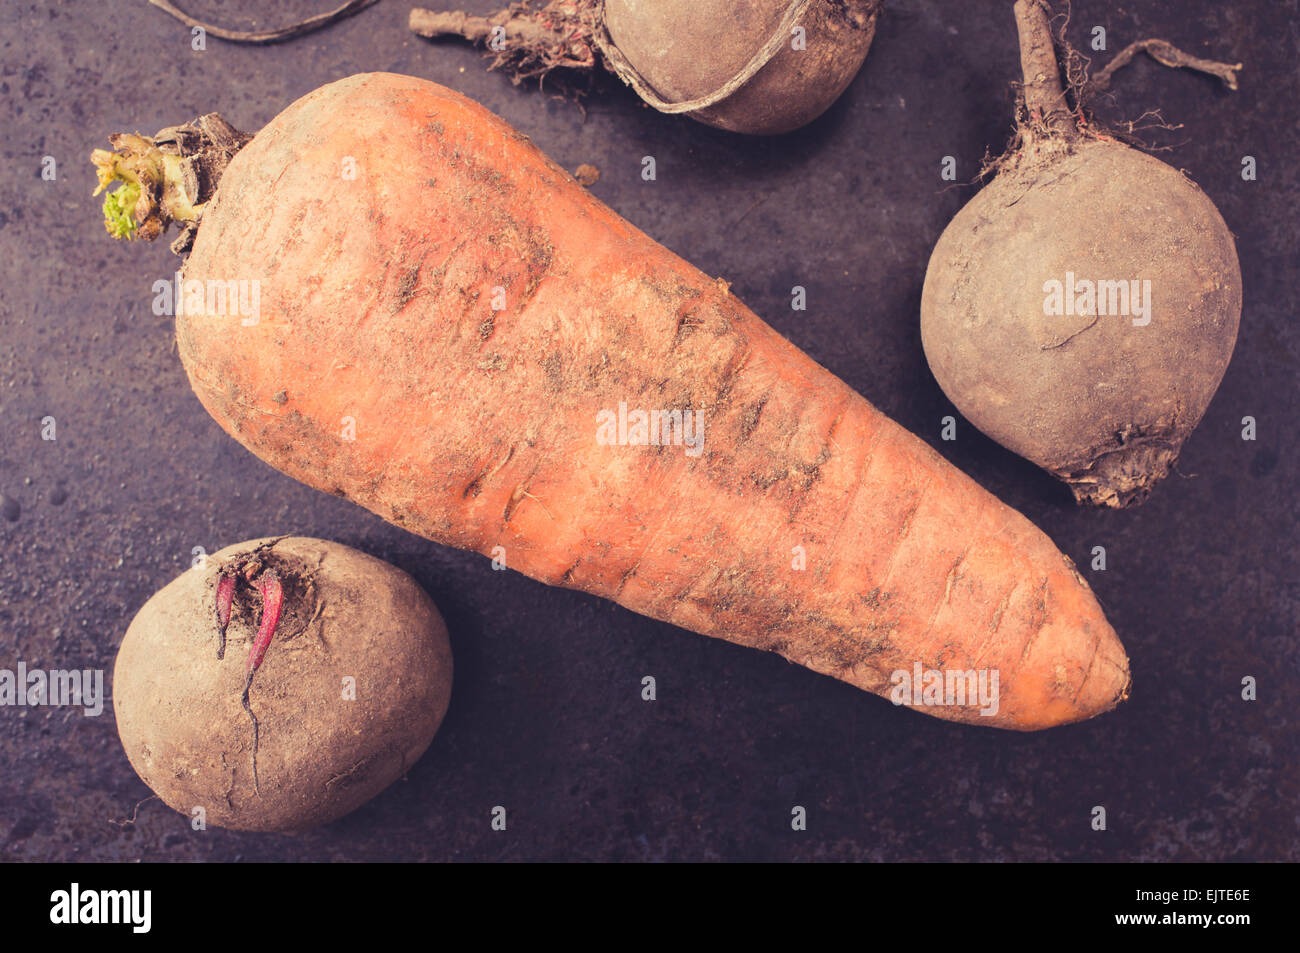 Storing a crop of vegetables carrot and beet top view - Stock Image